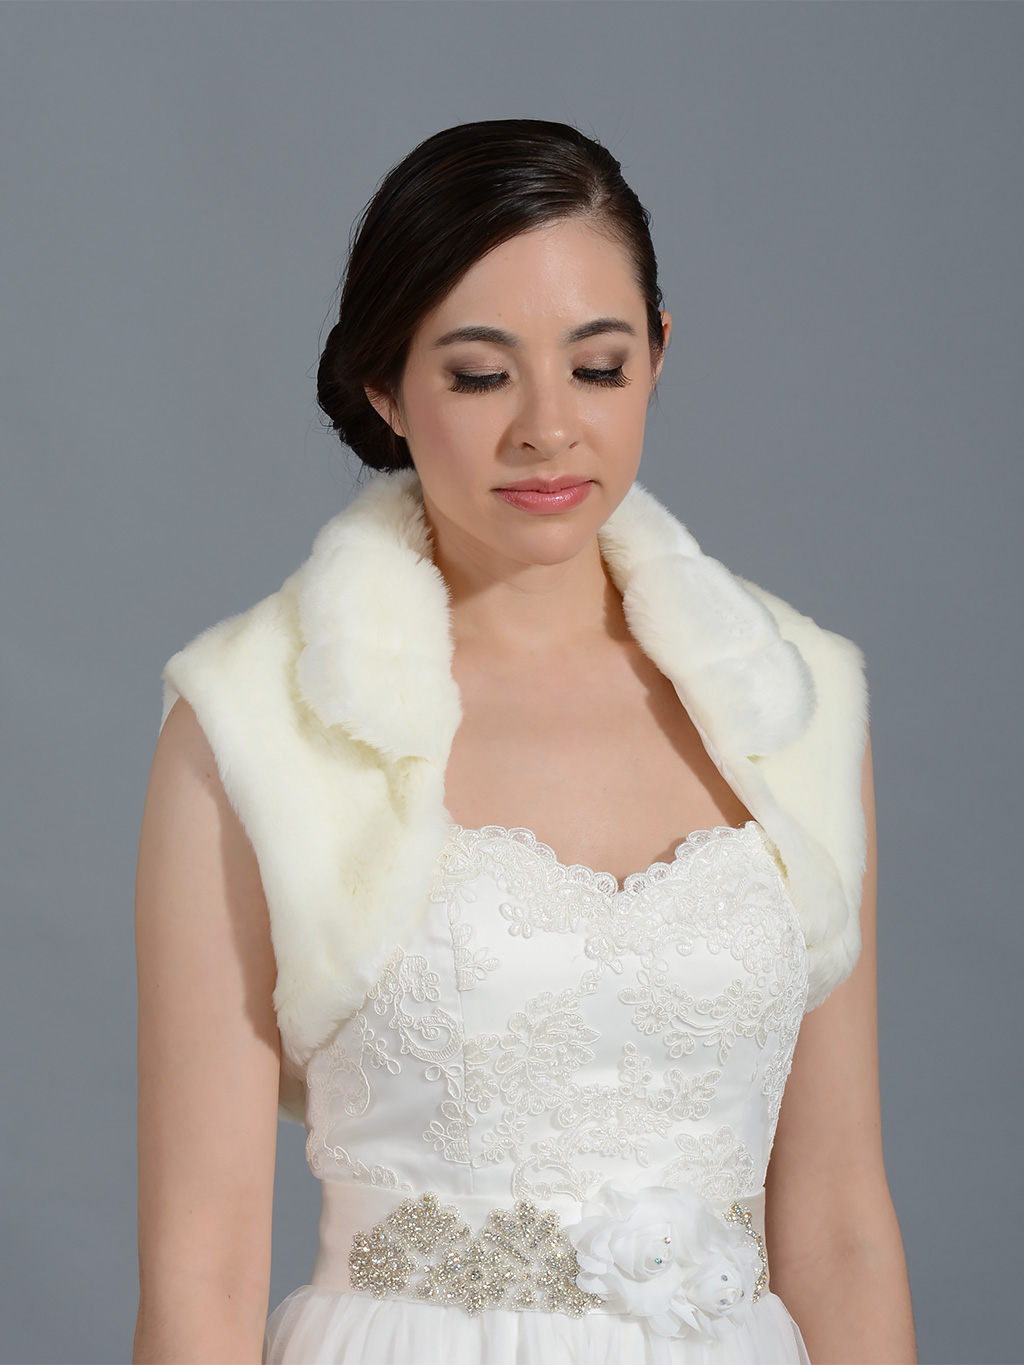 Faux fur shrug bolero wrap shawl FS003 ivory white and Black